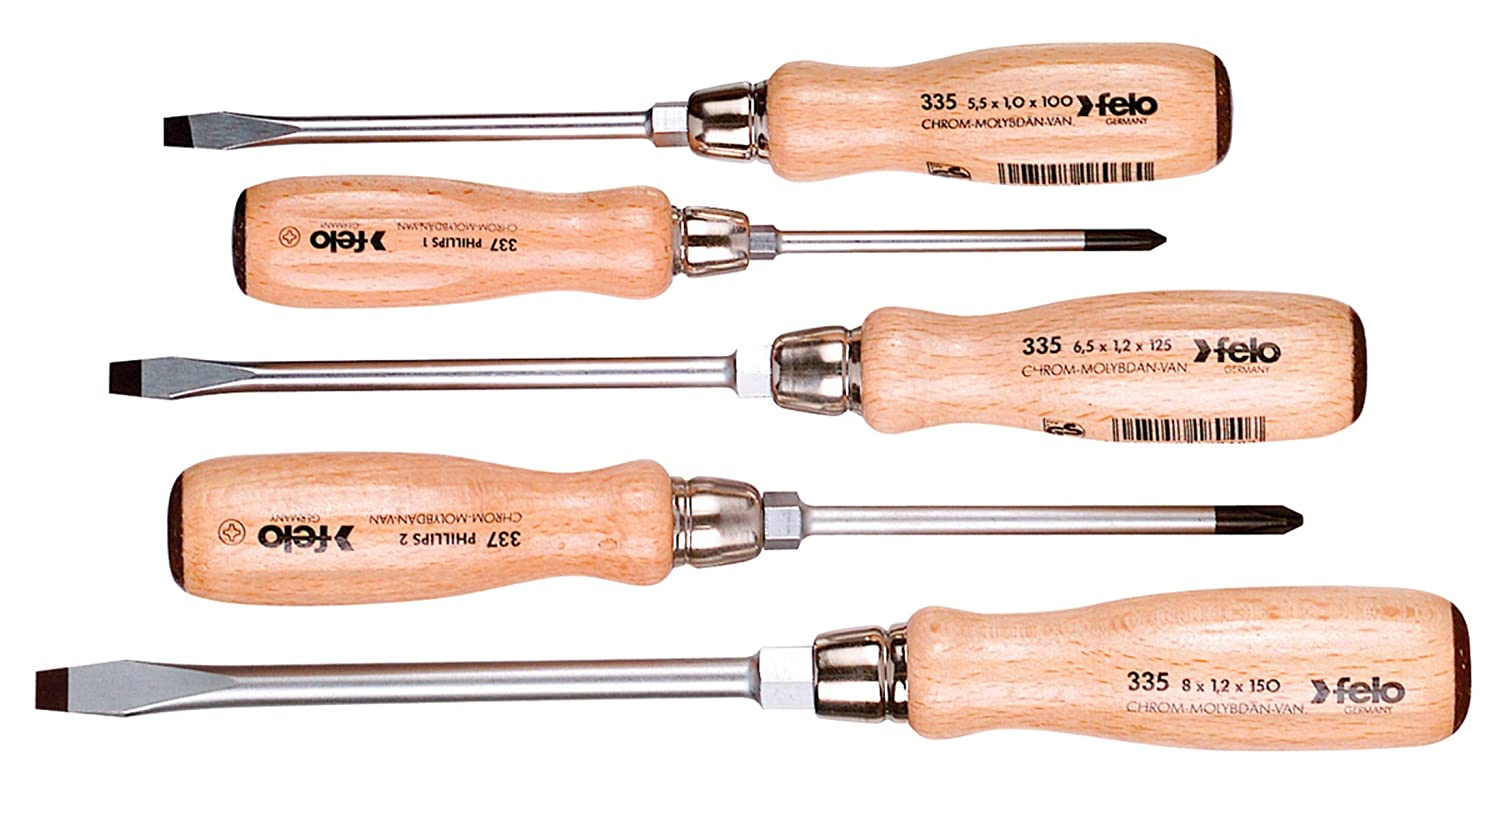 Felo 07157 22155 Slotted and Phillips Wood Handle Screwdrivers